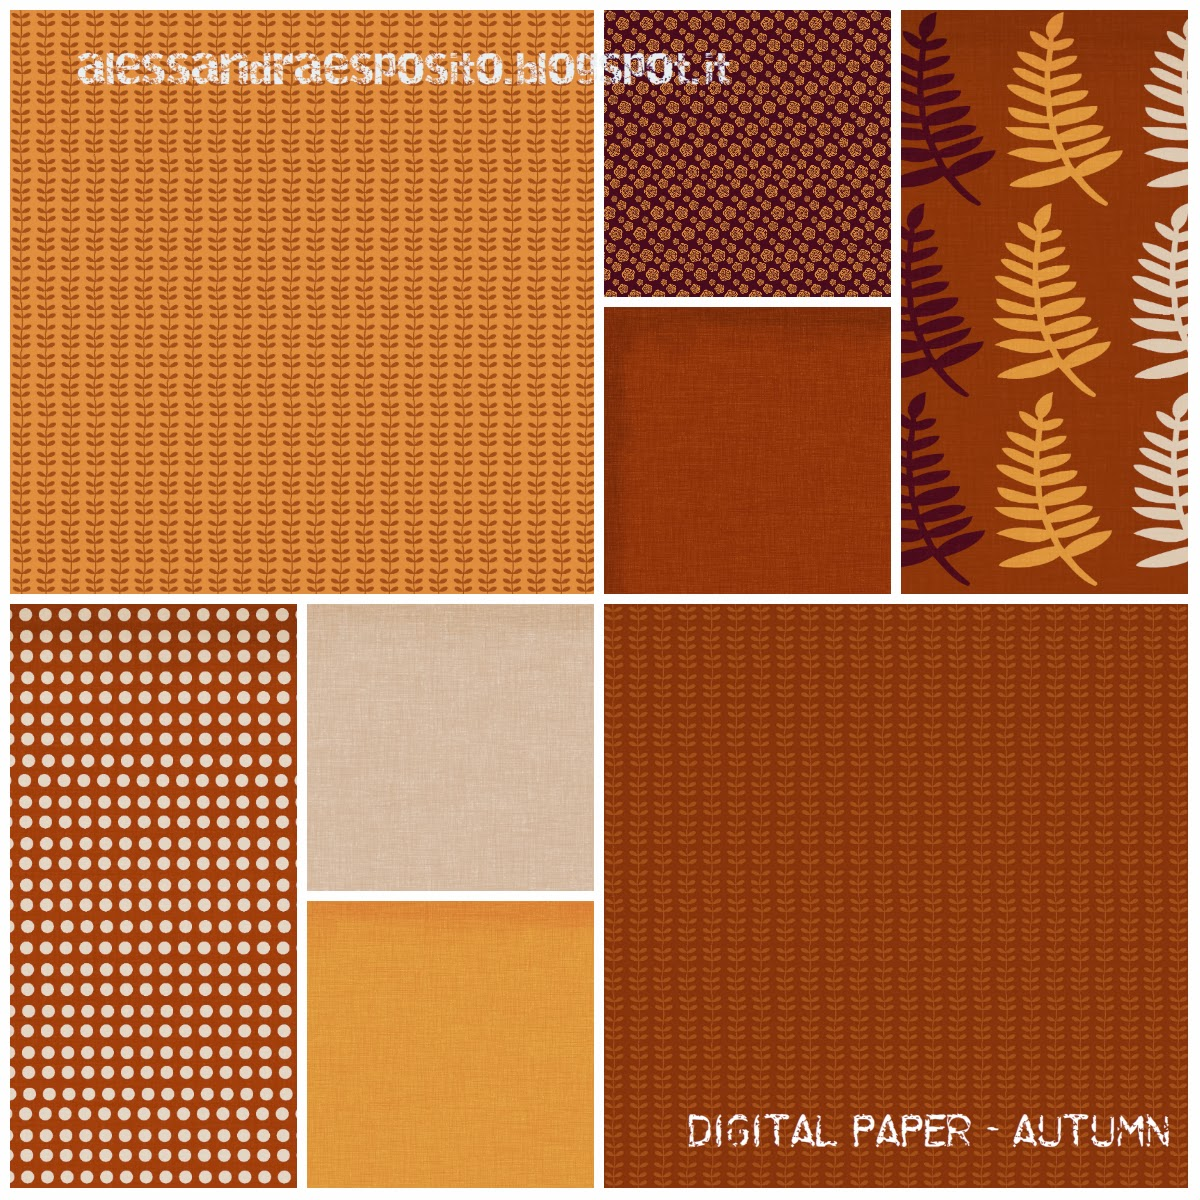 Free scrapbook autumn papers from Alessandra Esposito